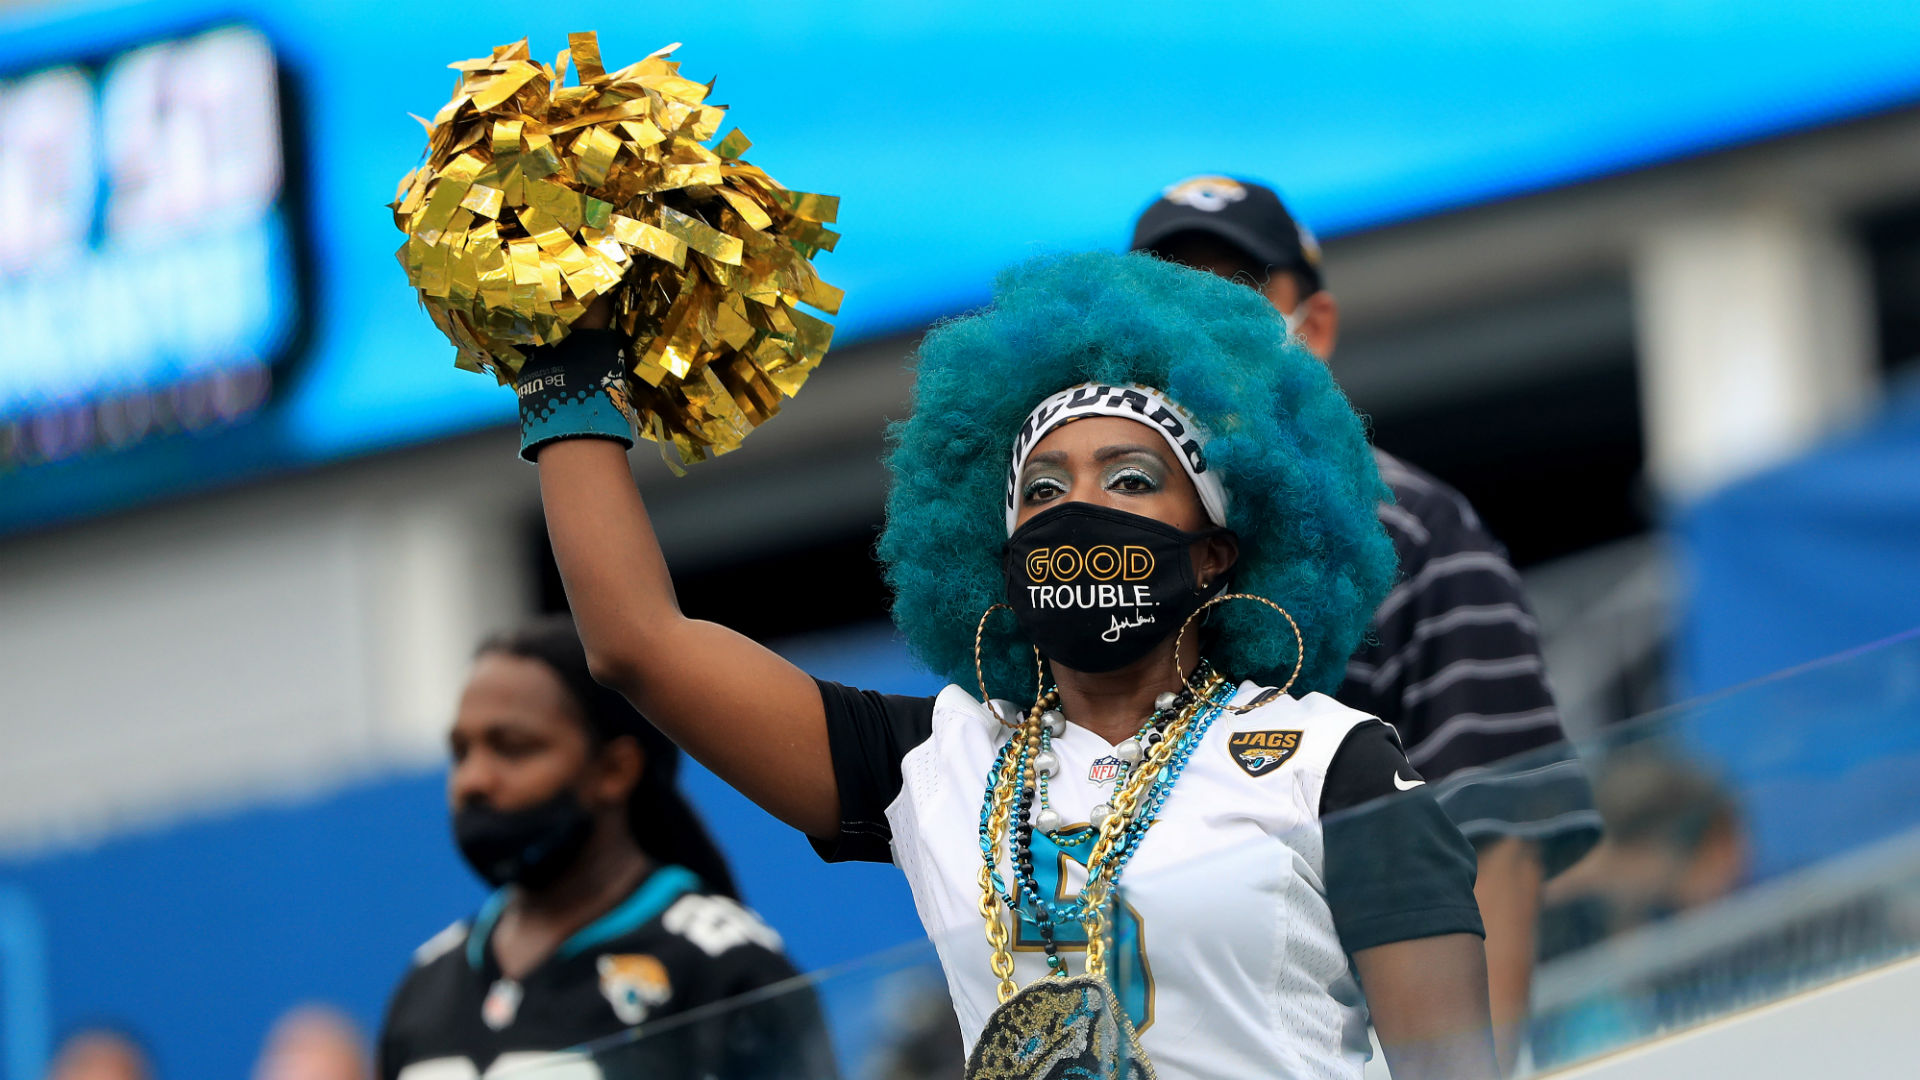 Jaguars fans cheer after Bears score touchdown to help Trevor Lawrence tank